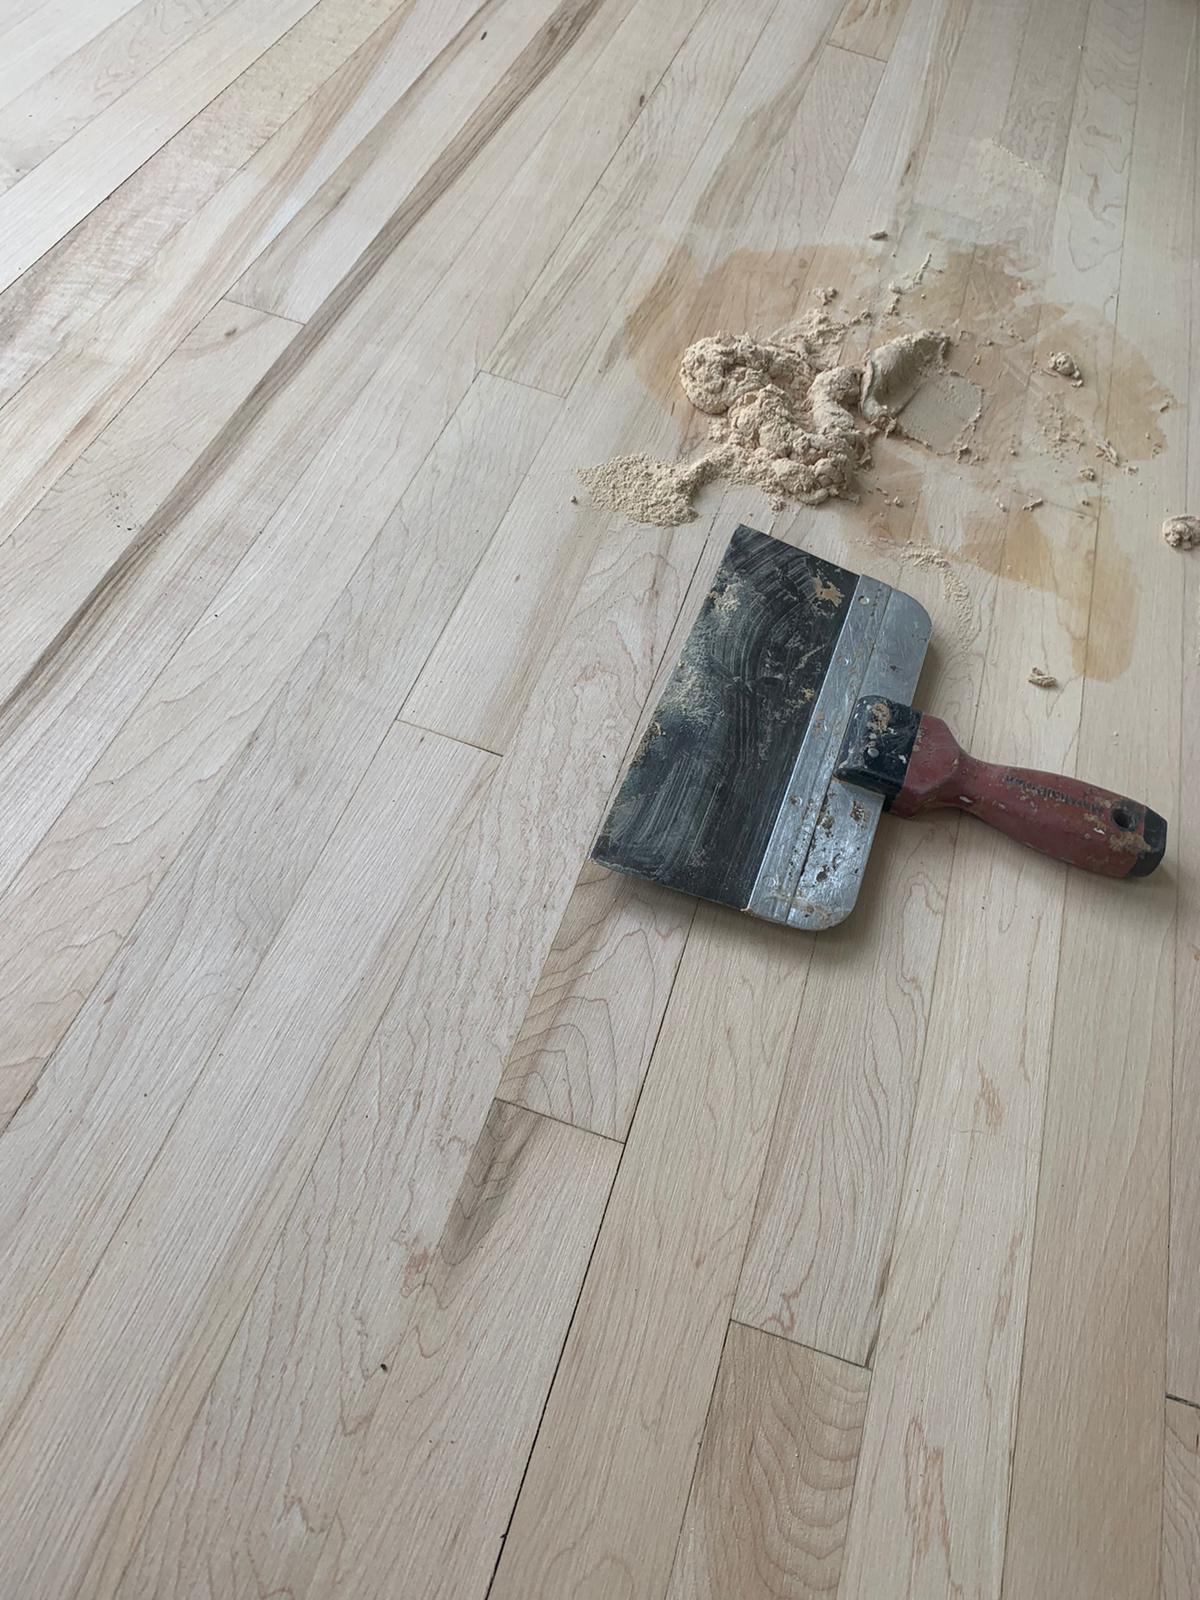 Sanding and Sealing Works 1